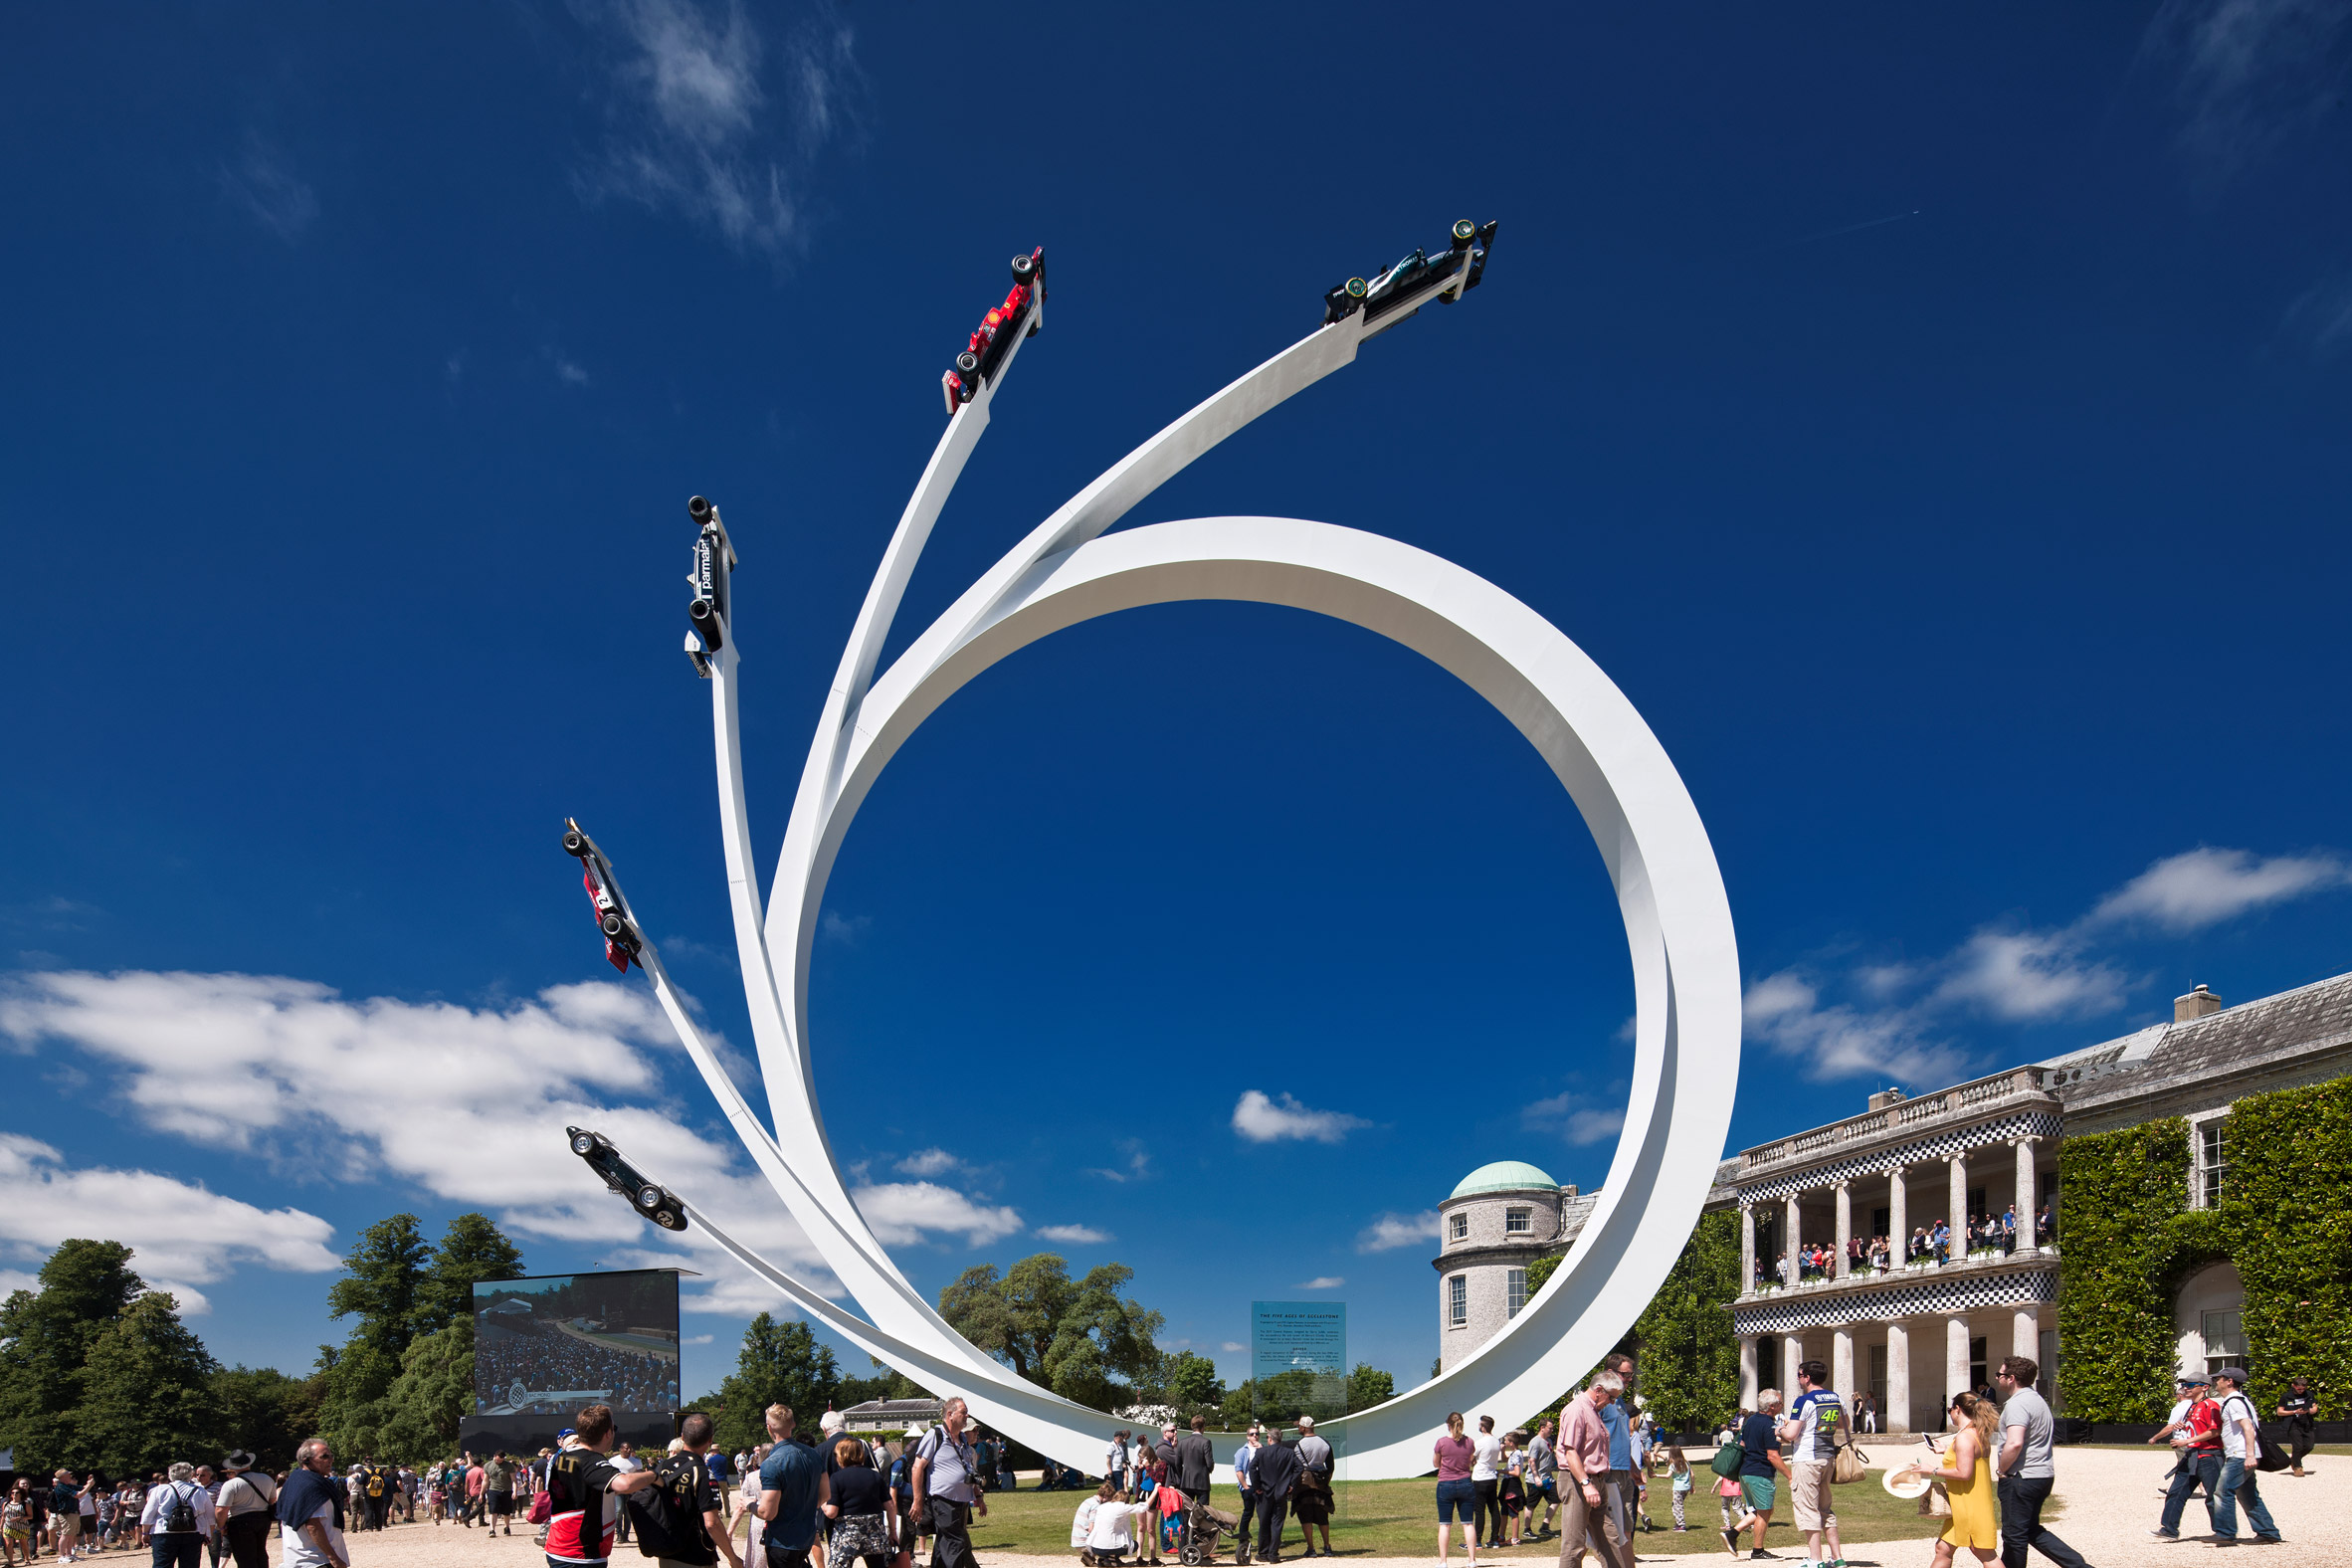 Gerry Judah's latest towering Goodwood sculpture pays homage to Bernie Ecclestone